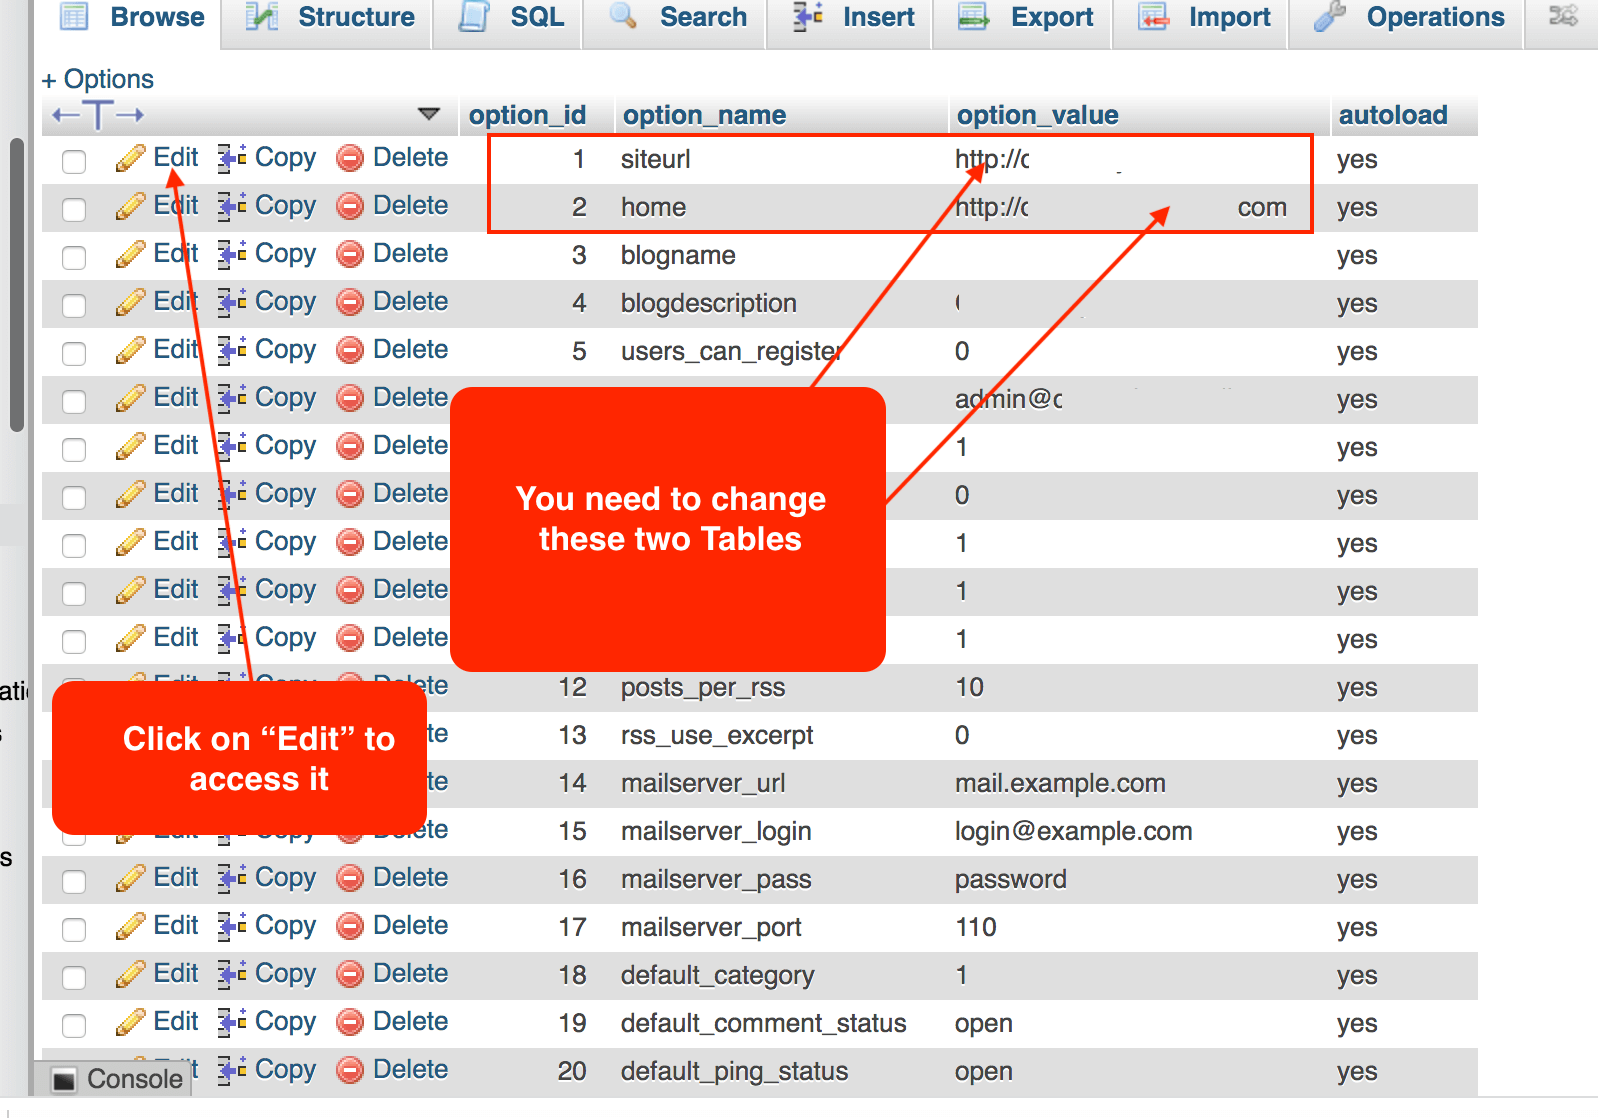 Finding site URL and home address tables in the database